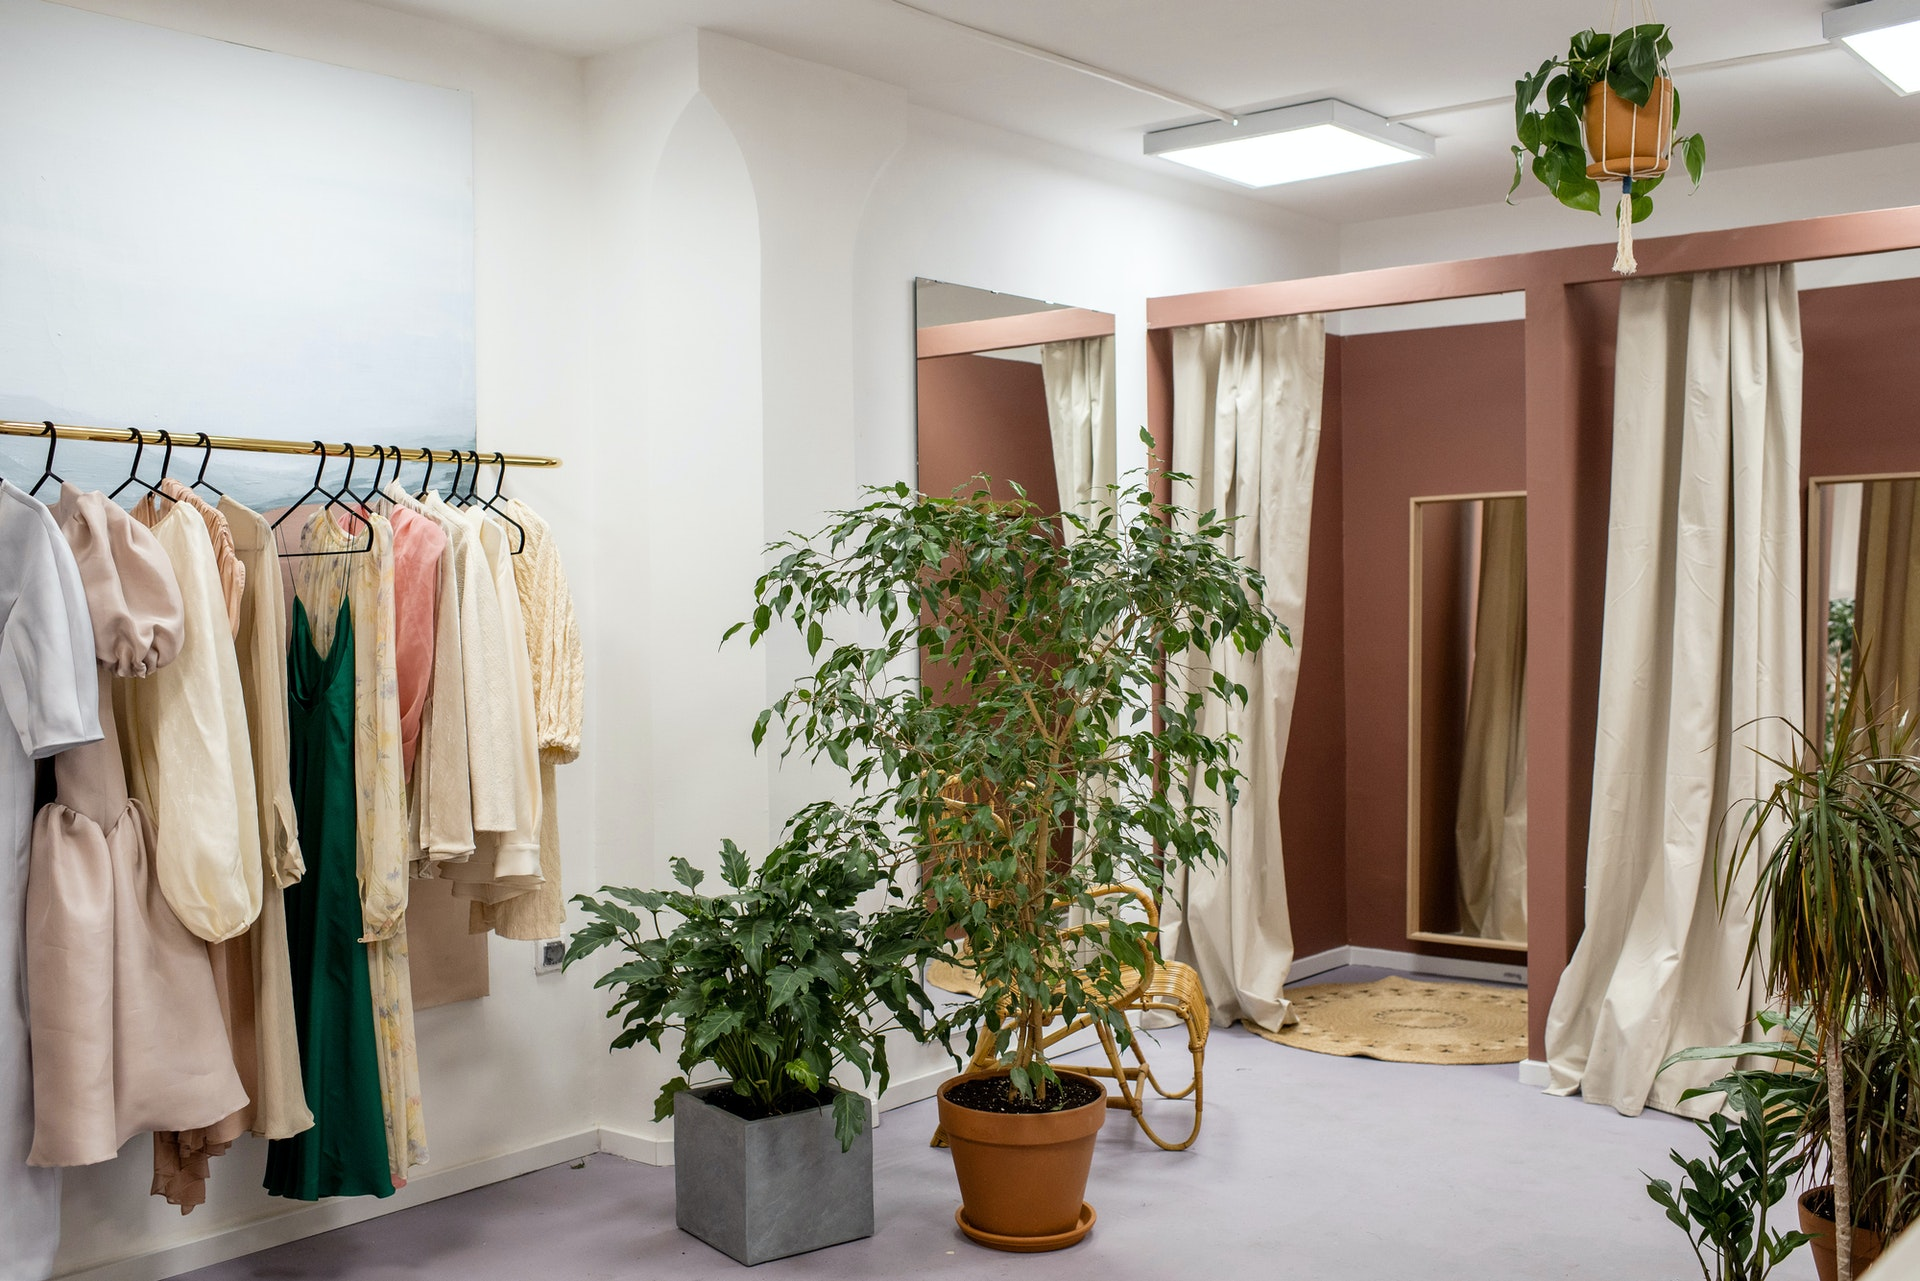 interior of clothing shop with dressing rooms and plants